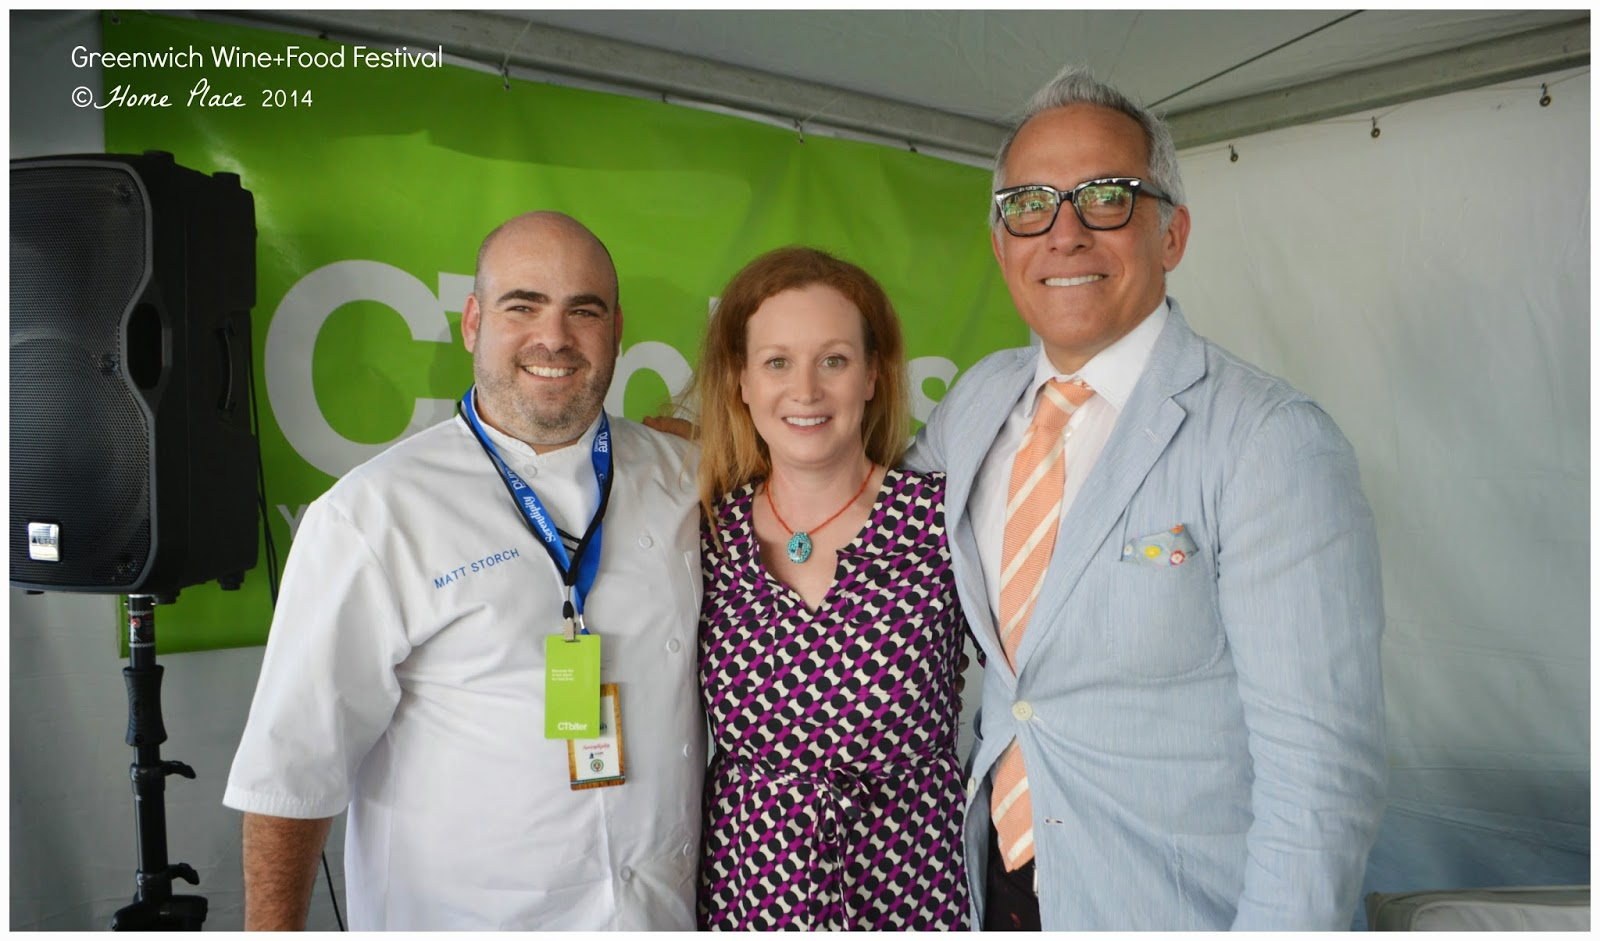 Greenwich Wine + Food Festival - Chef Geoffrey Zakarian